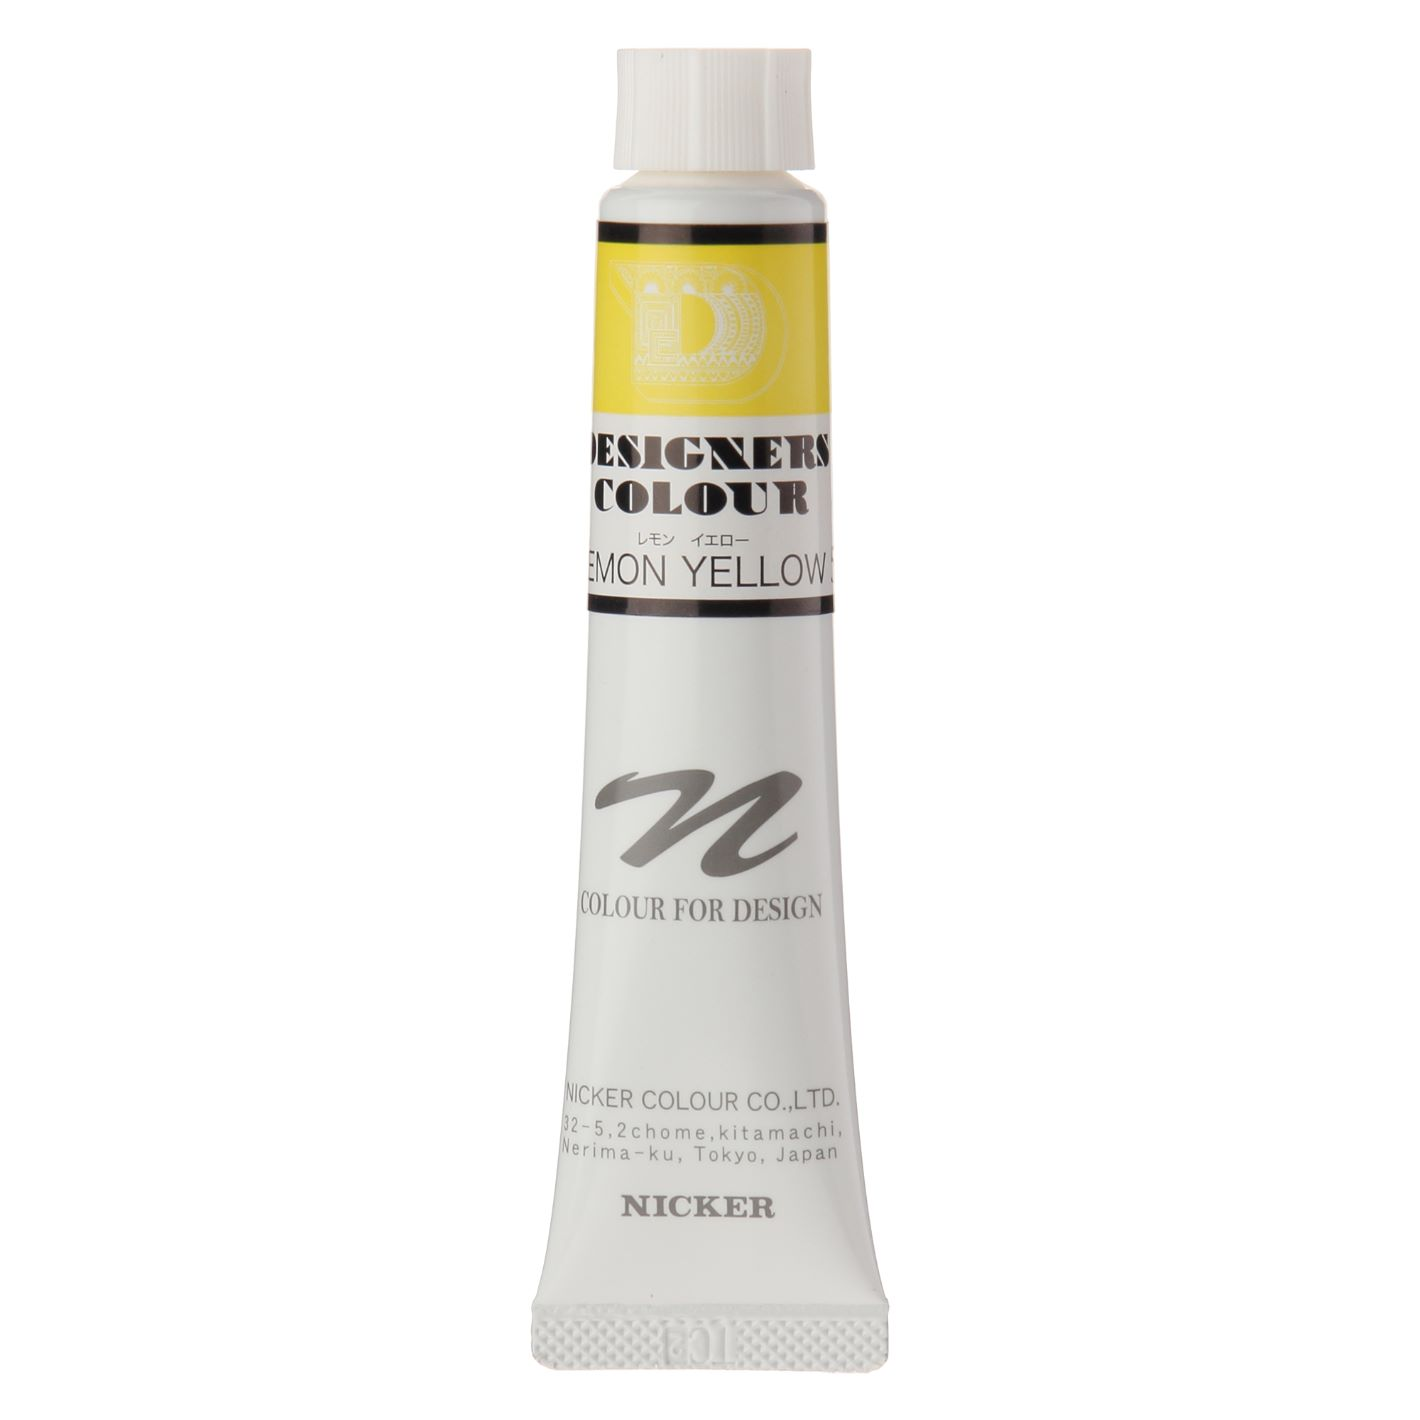 Nicker DESIGNERS COLOUR 20 ml 501 LEMON YELLOW